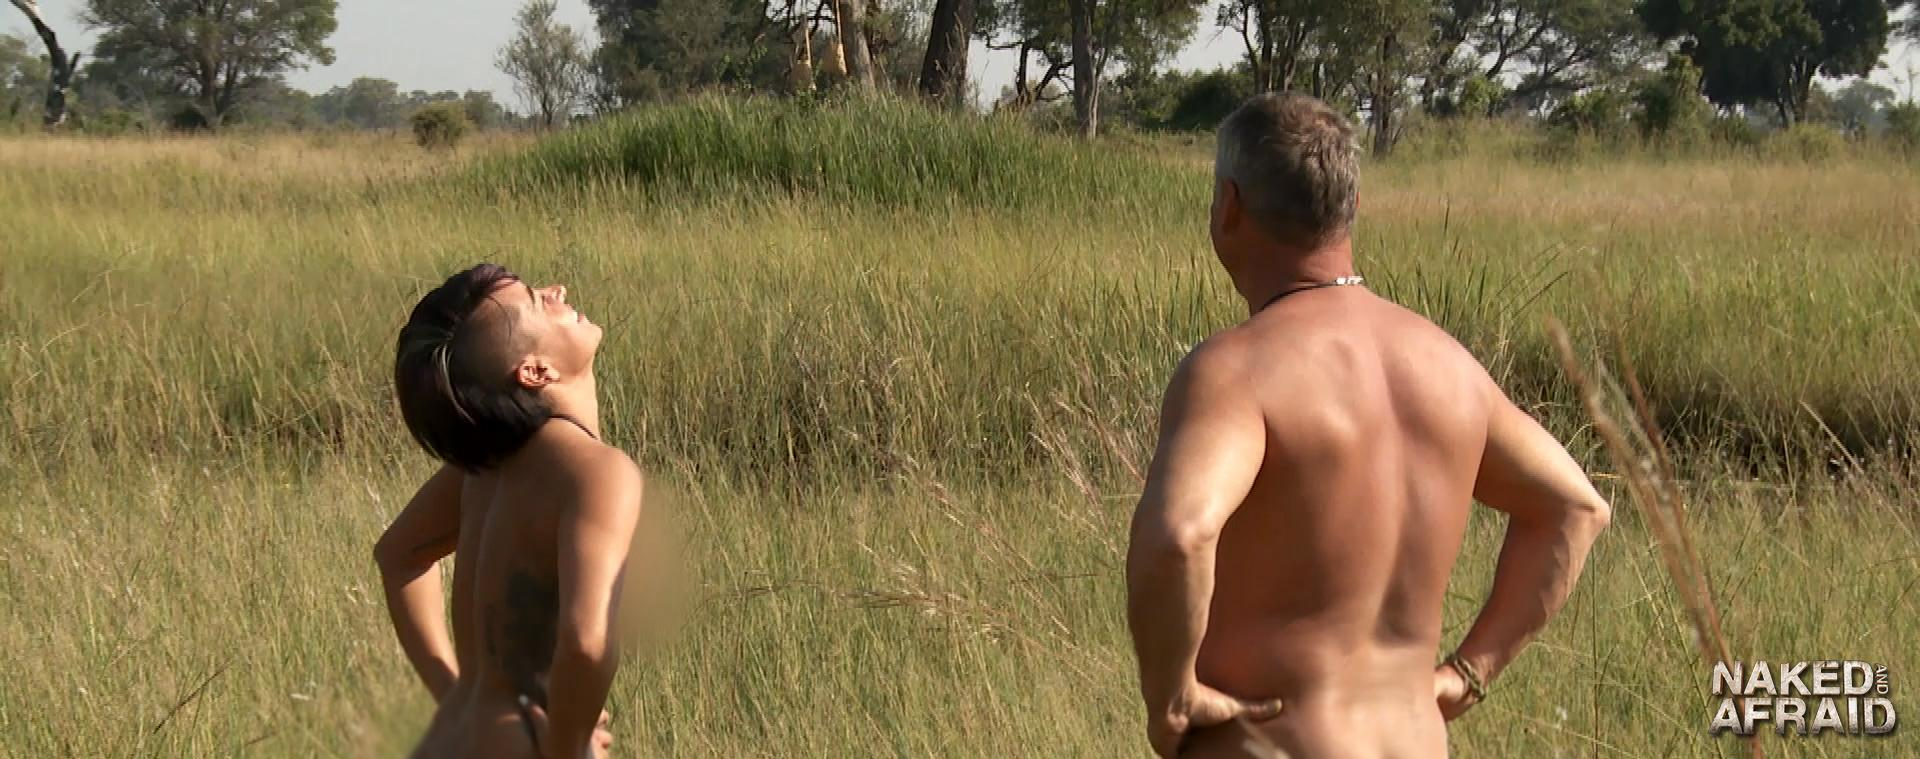 Naked And Afraid Laura Uncensored - Adult Videos-5184